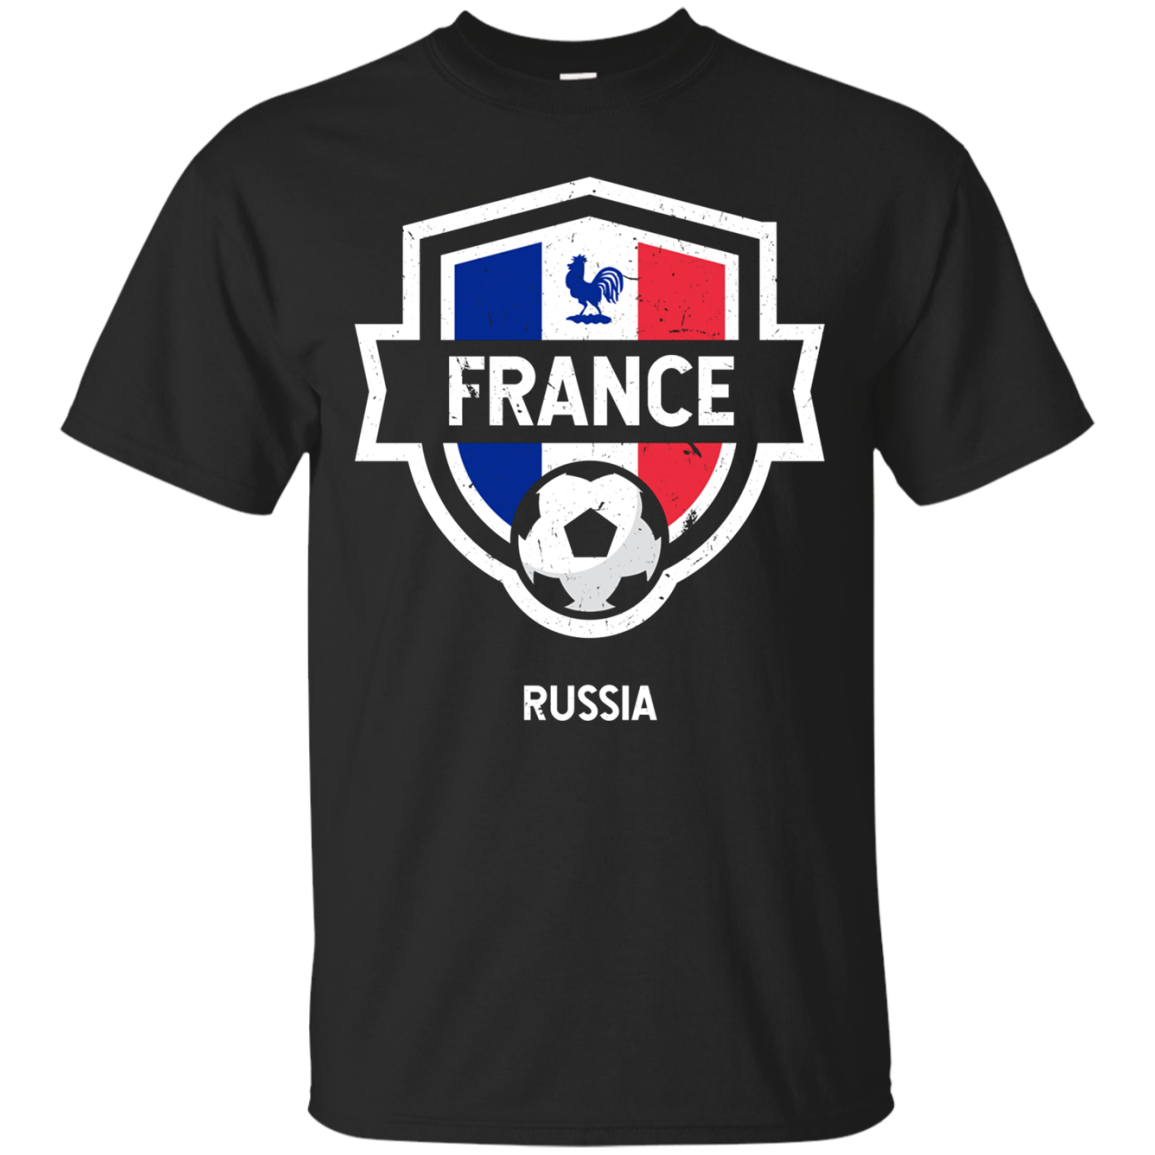 Classic France Football 2018 Team, Russia